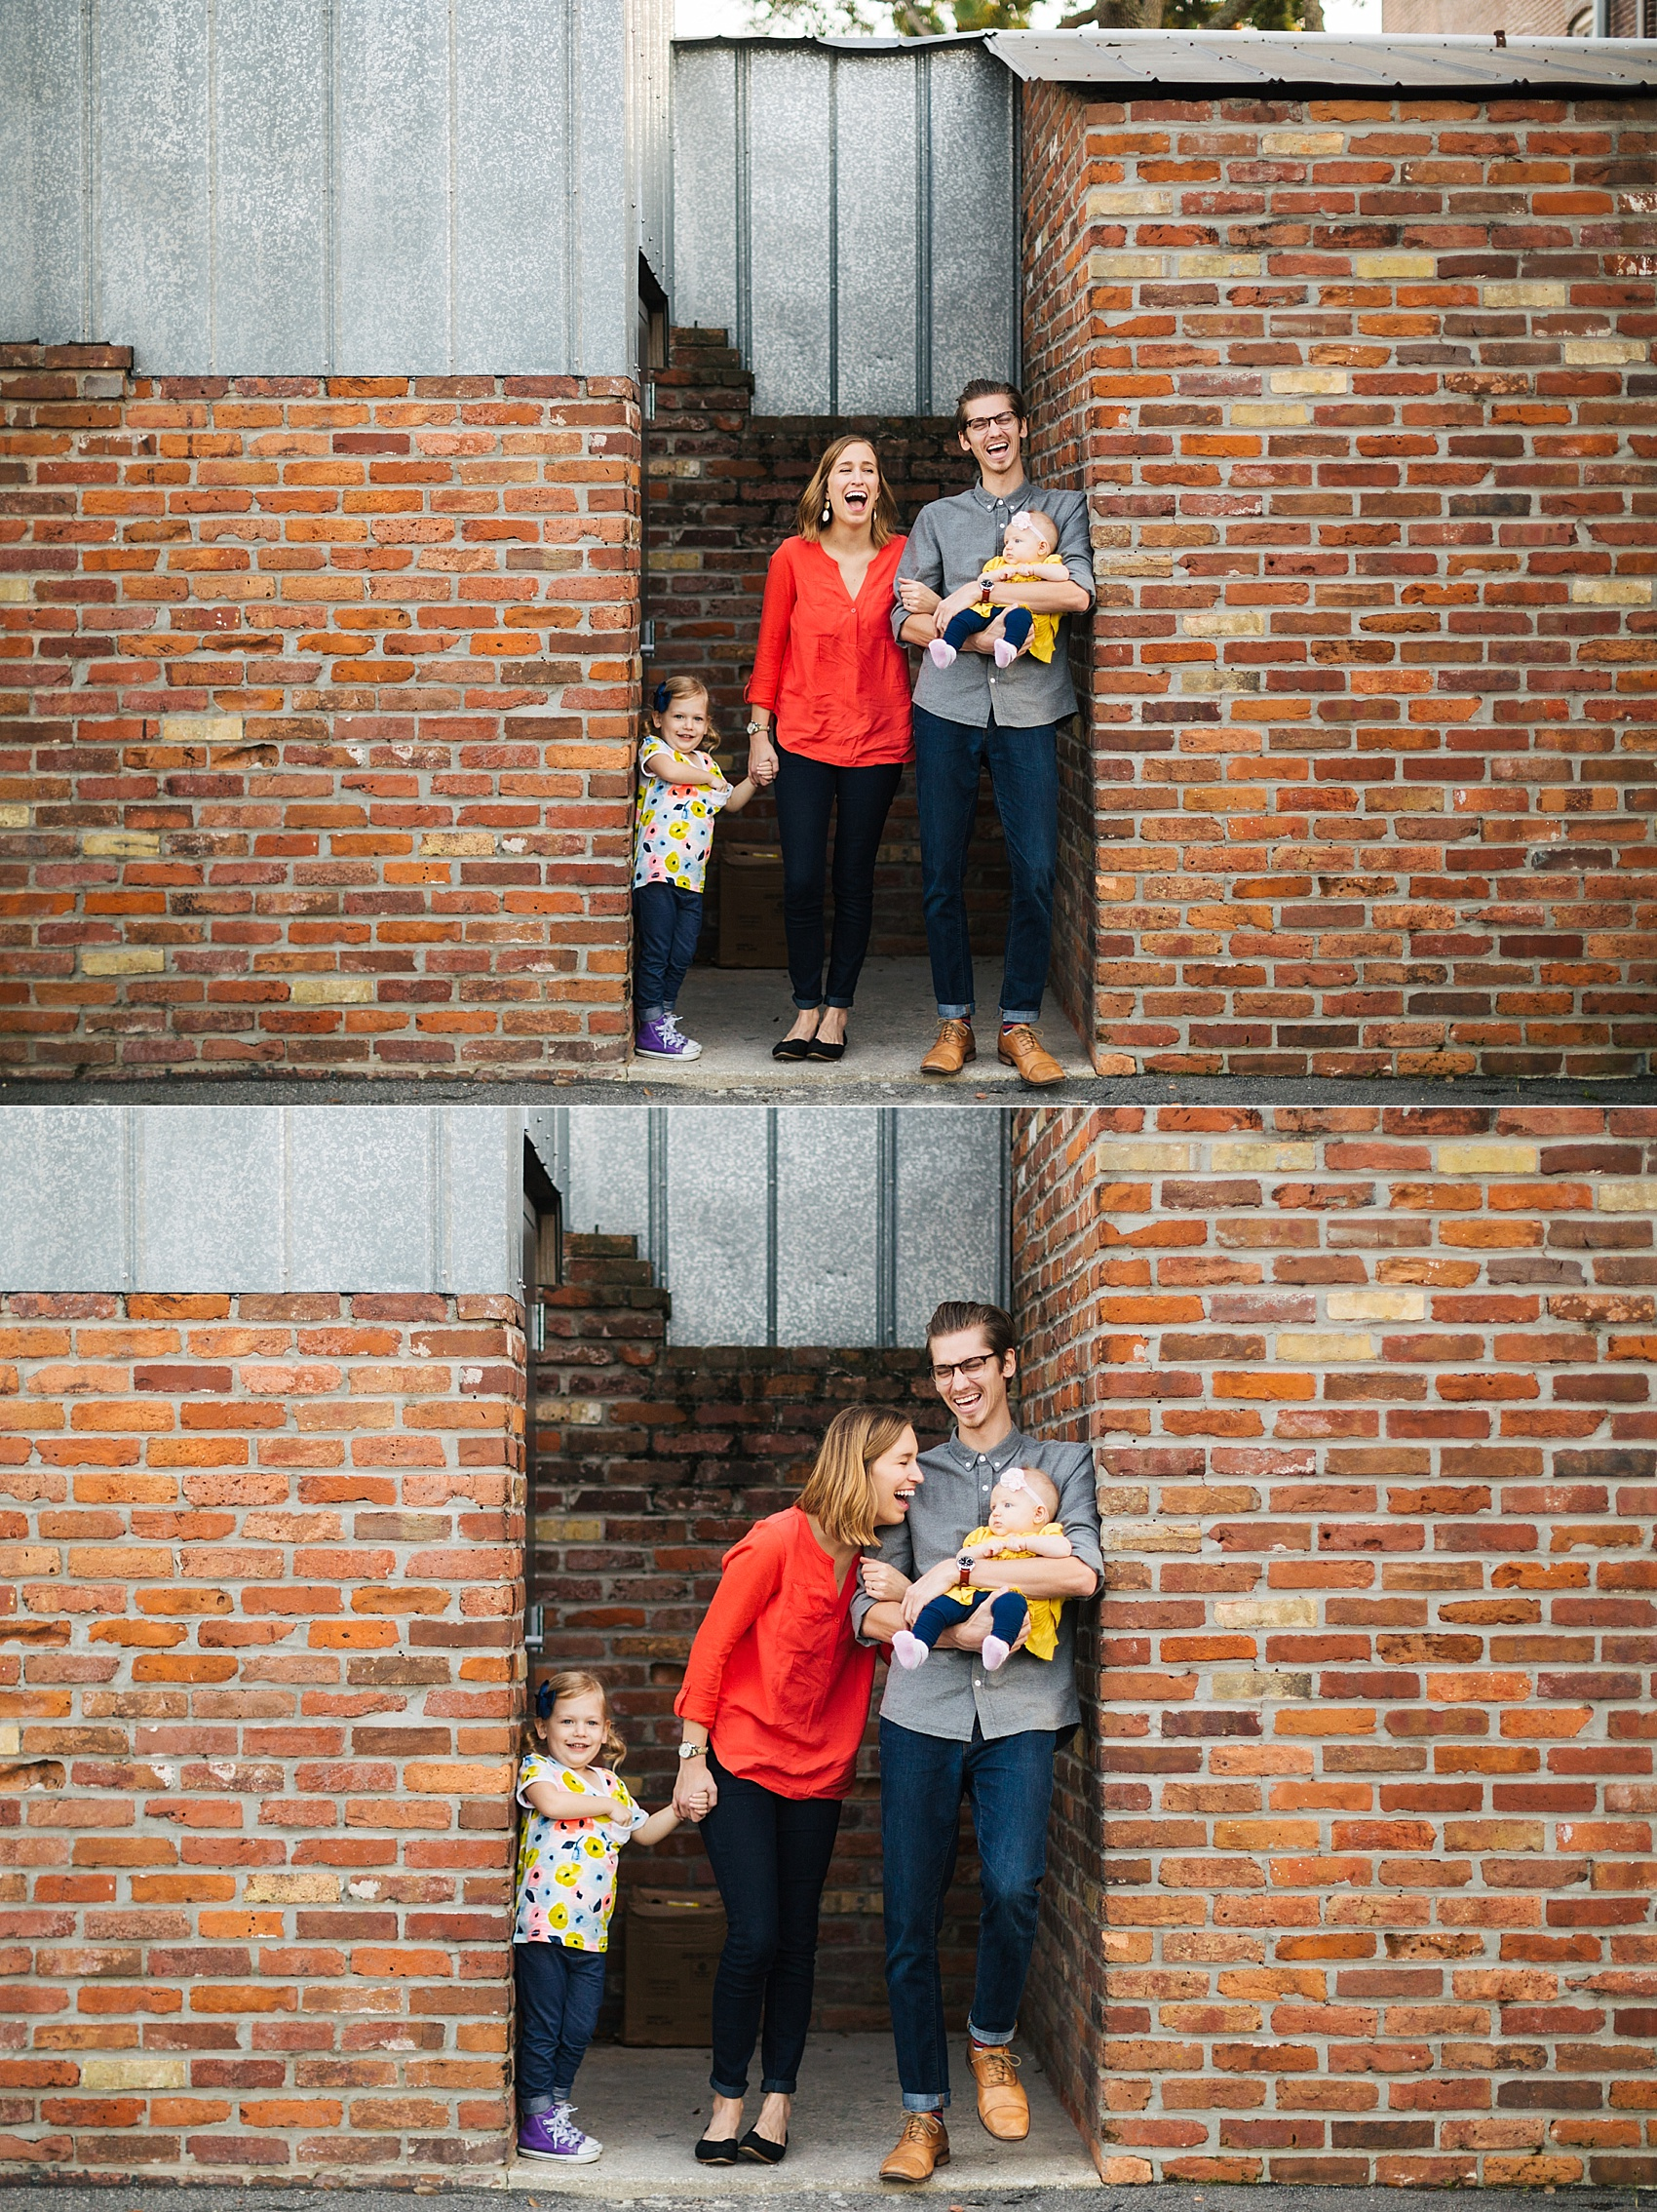 tampa family portrait photographer-12